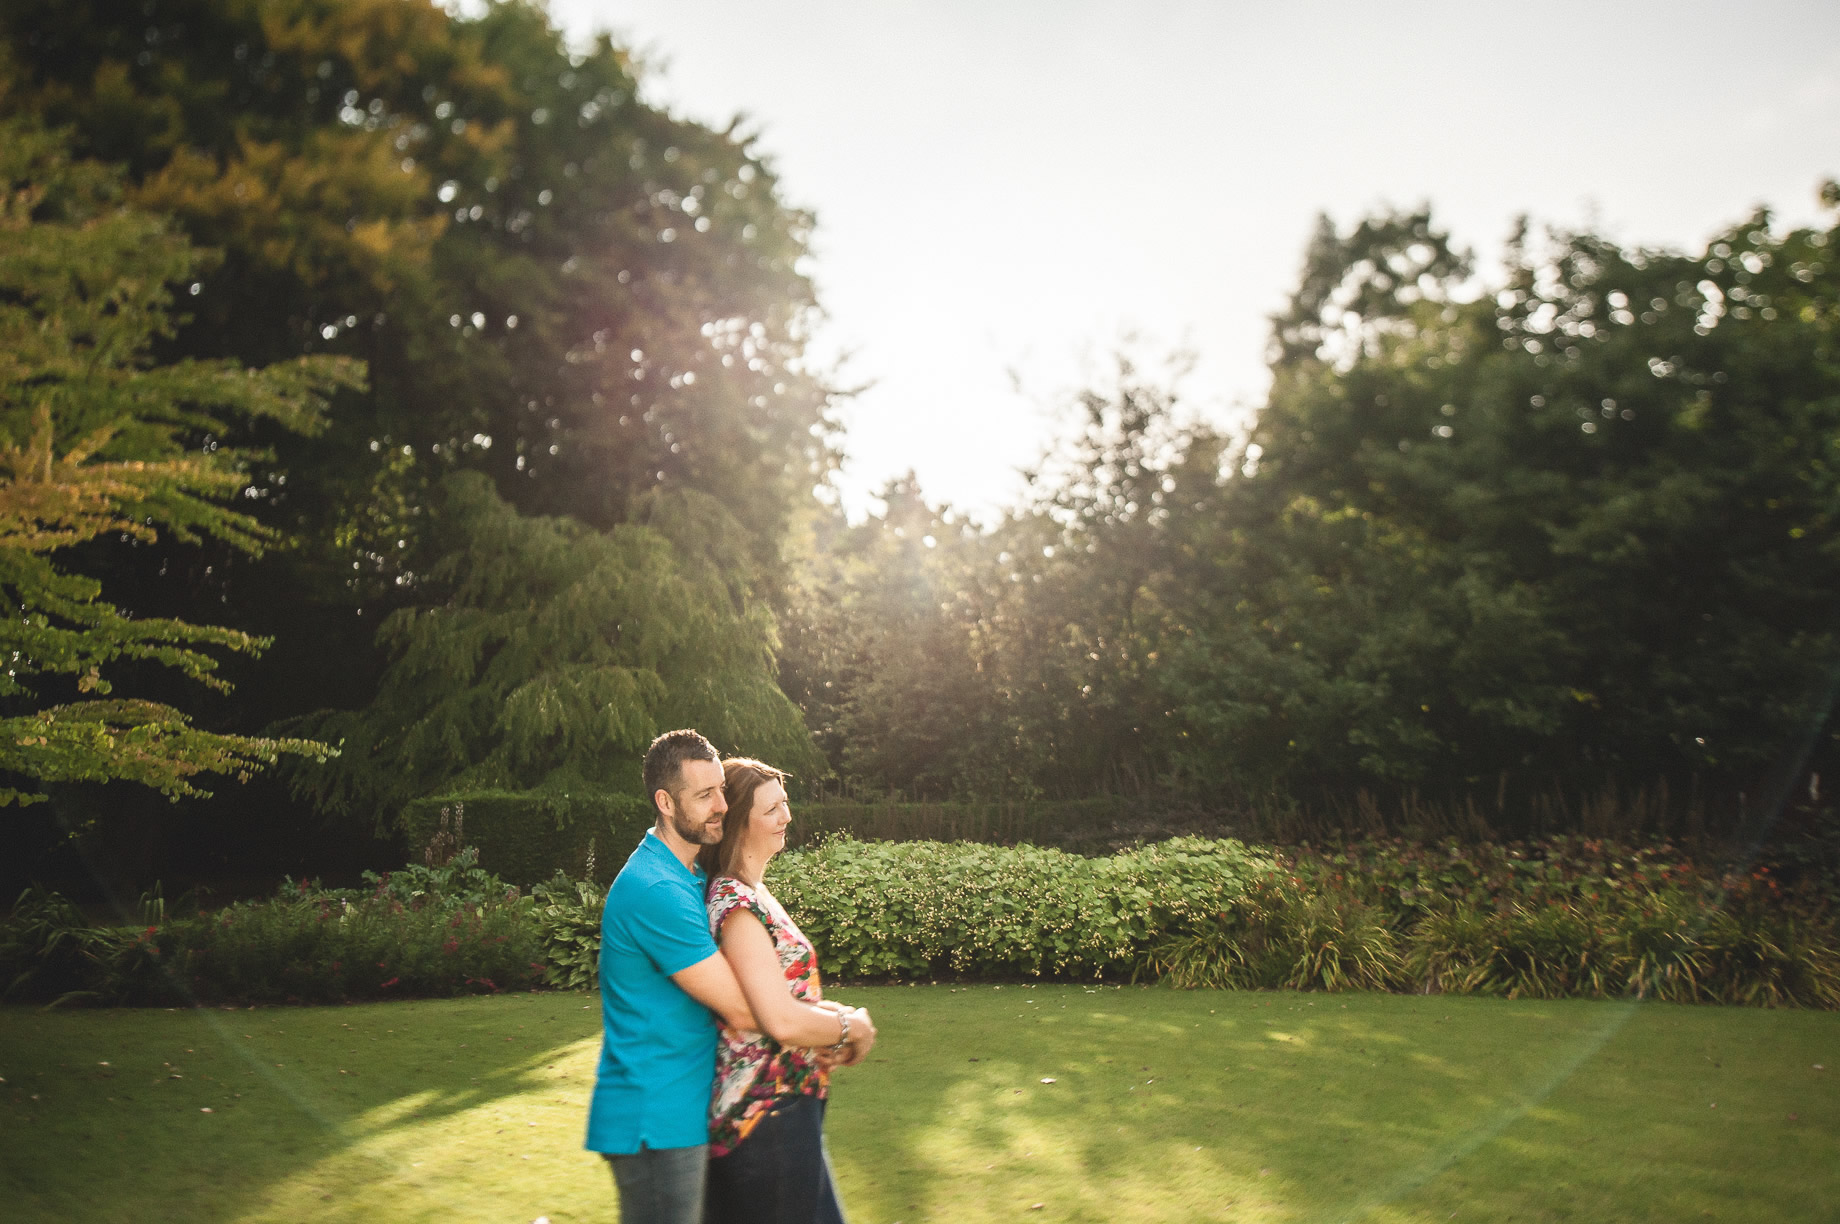 Keri and Paul's Pre-Wedding Shoot at Walton Gardens 009